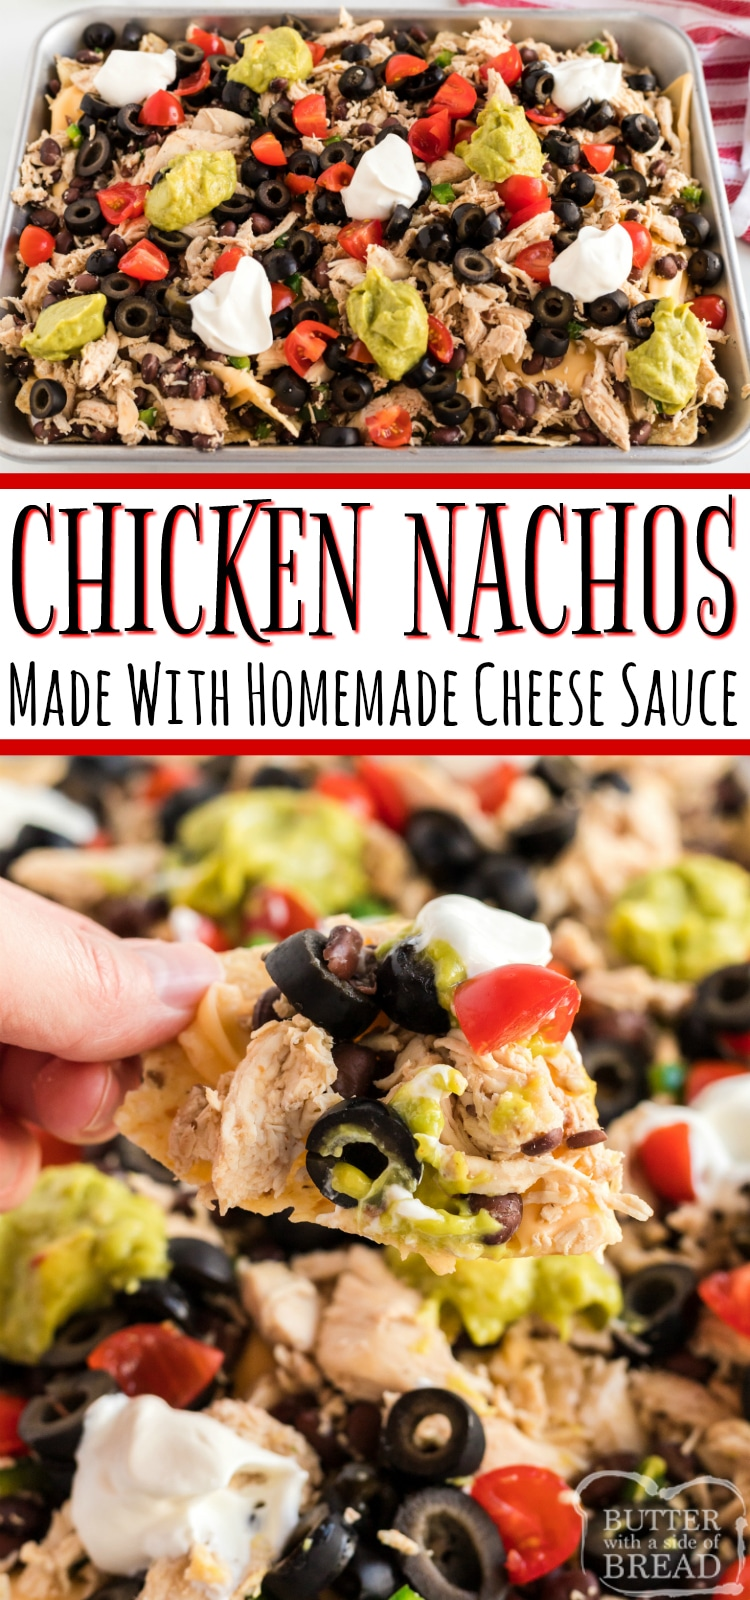 Chicken Nachos recipe made with a simple homemade cheese sauce made from real cheese. This simple nacho recipe can be made without an oven and you can add any veggies or toppings you prefer!